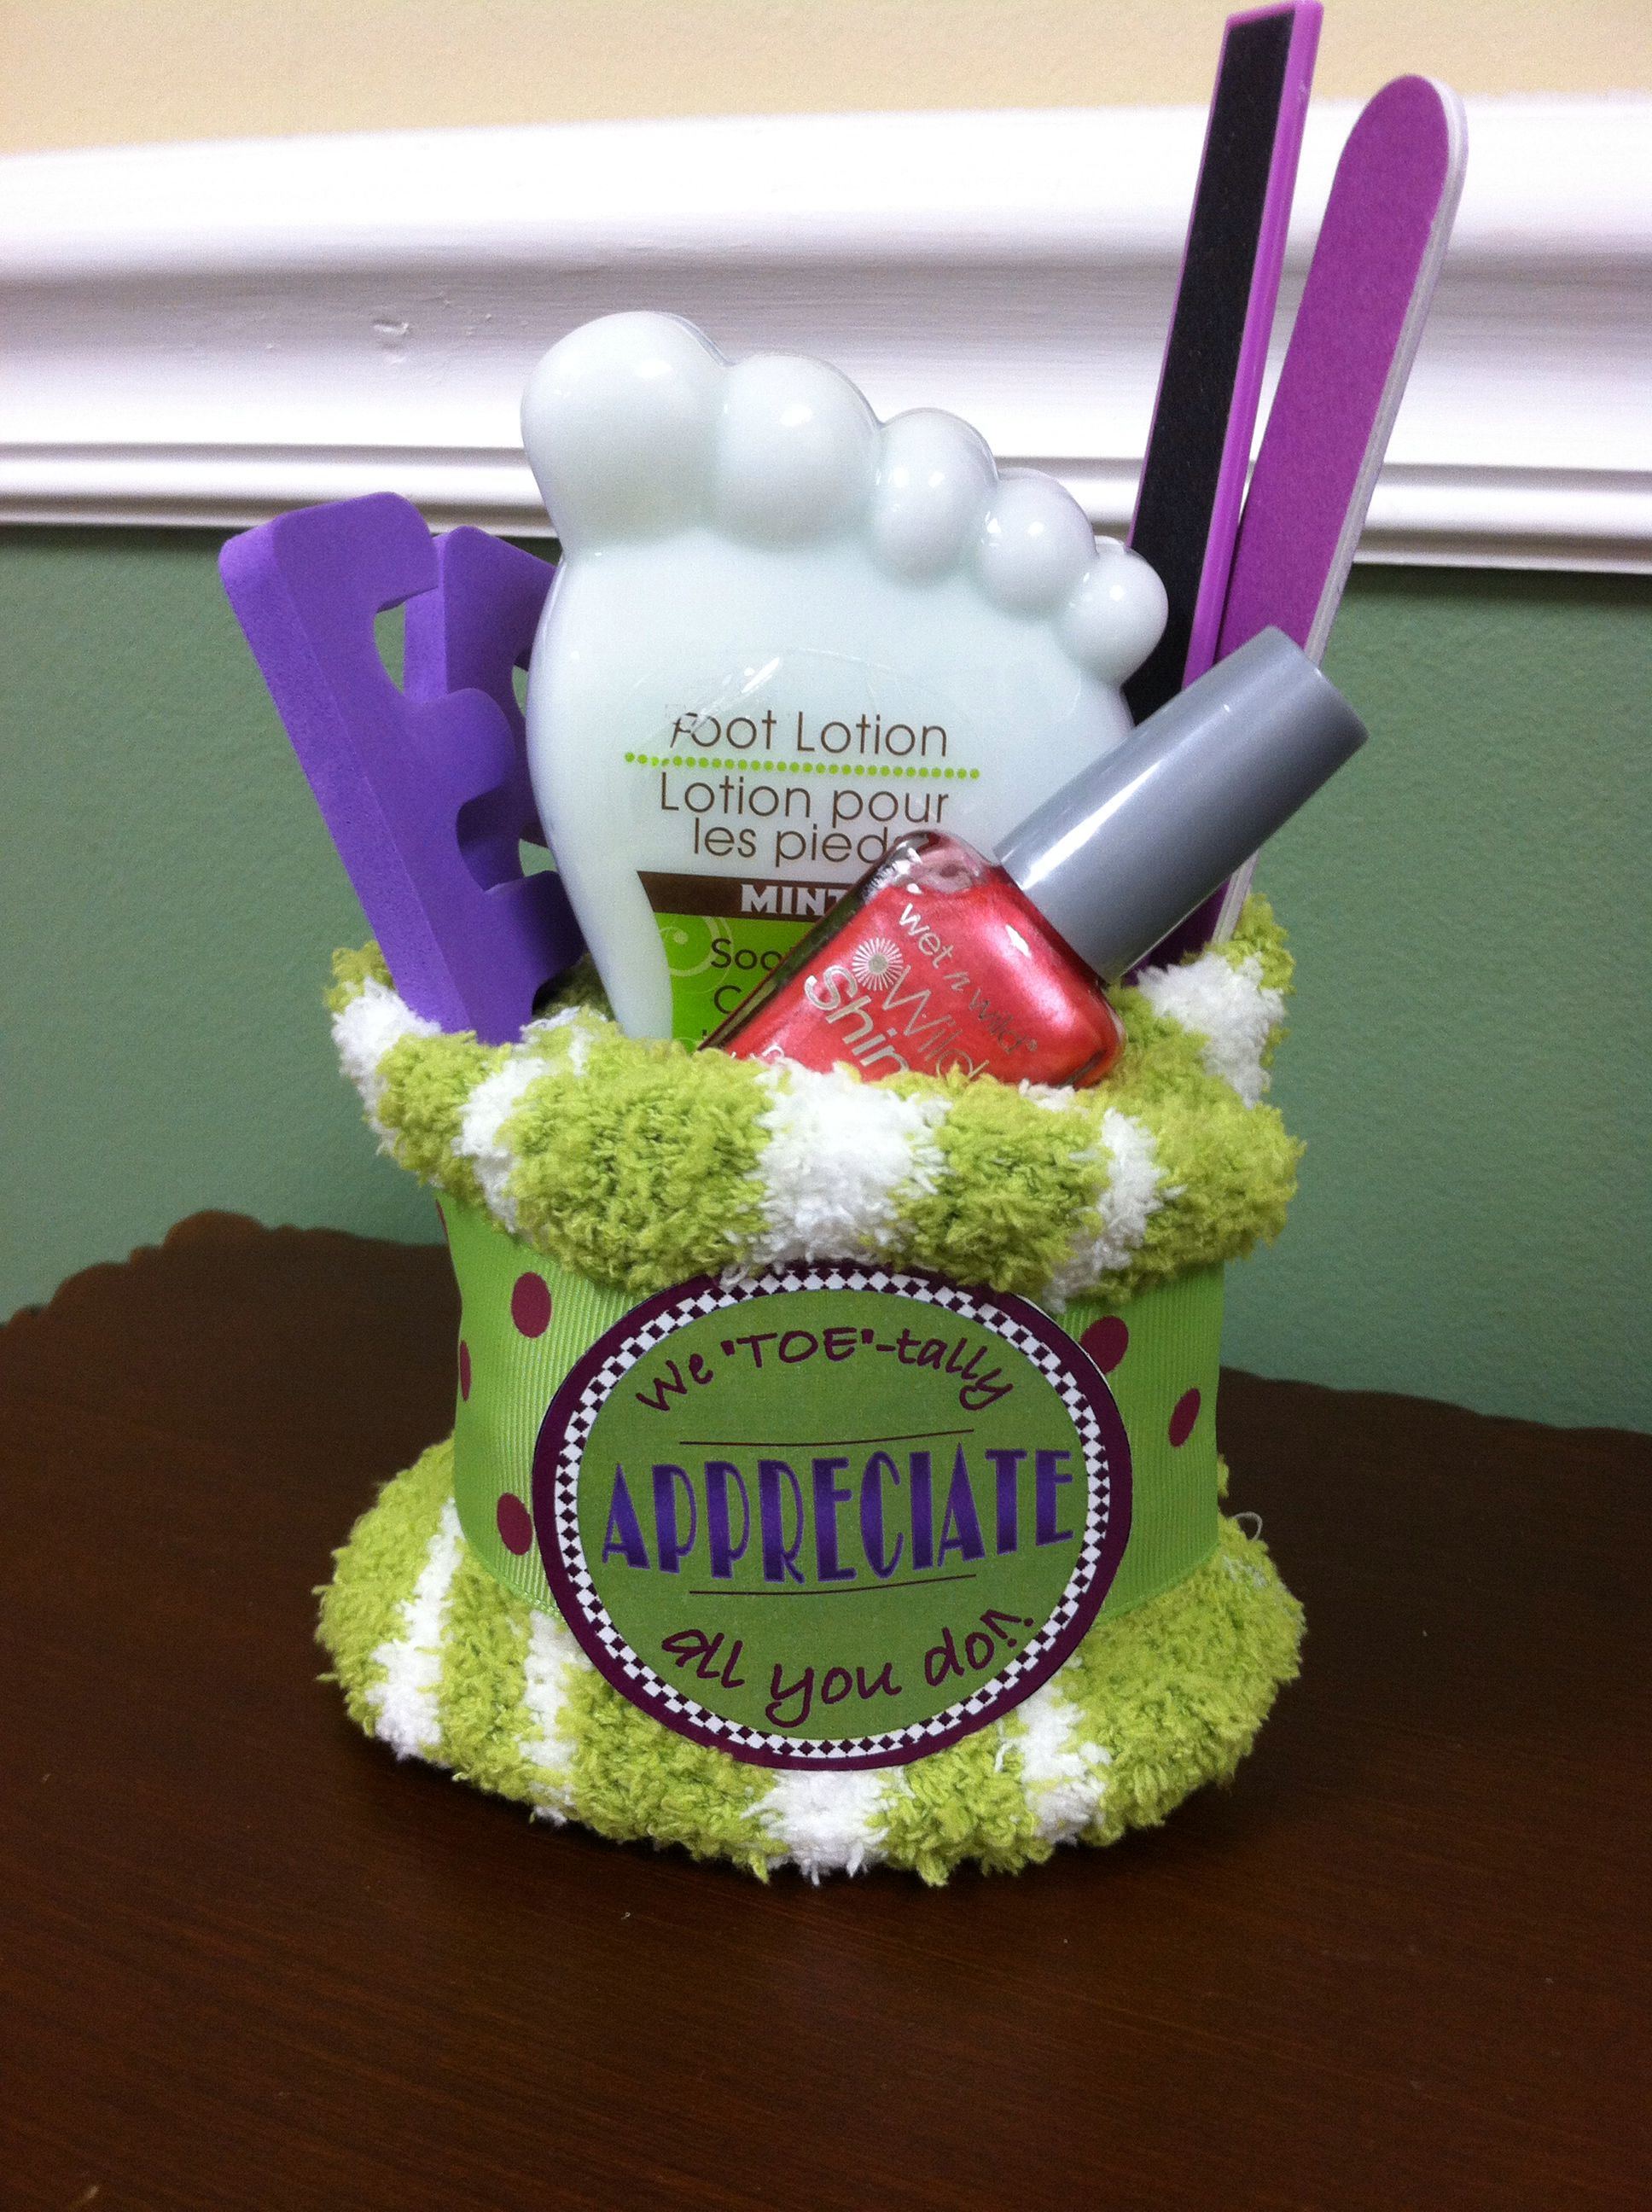 """""""We TOE-tally appreciate all you do!"""" Made 15 of these for volunteer appreciation gifts but forgot to photograph them. Color scheme of others was much better, all shades of lime and plum. This was a leftover...included fuzzy socks, nail polish, foot scrub, pedicure kit items. Total $4 each."""